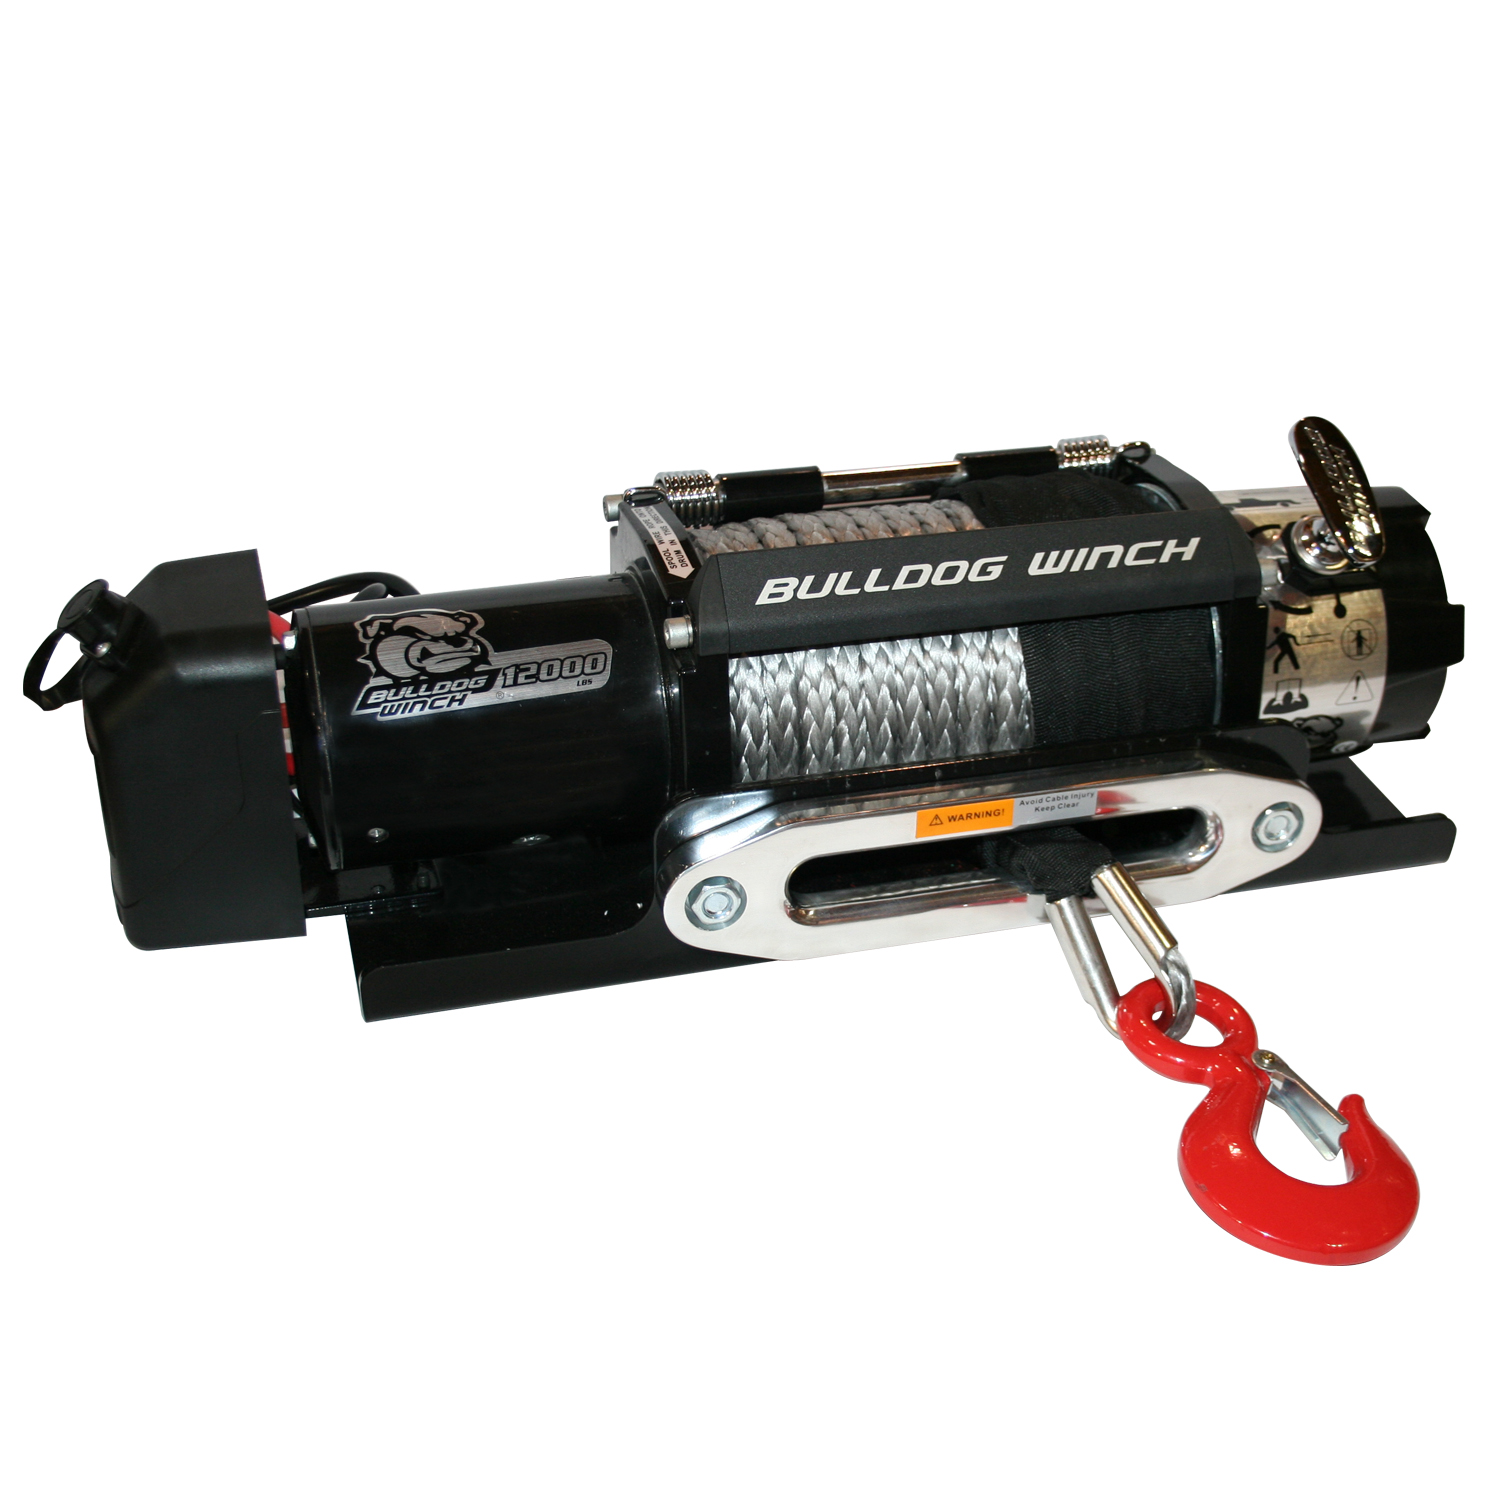 Bulldog Winch 12,000lb Trailer Winch w/ Synthetic Rope